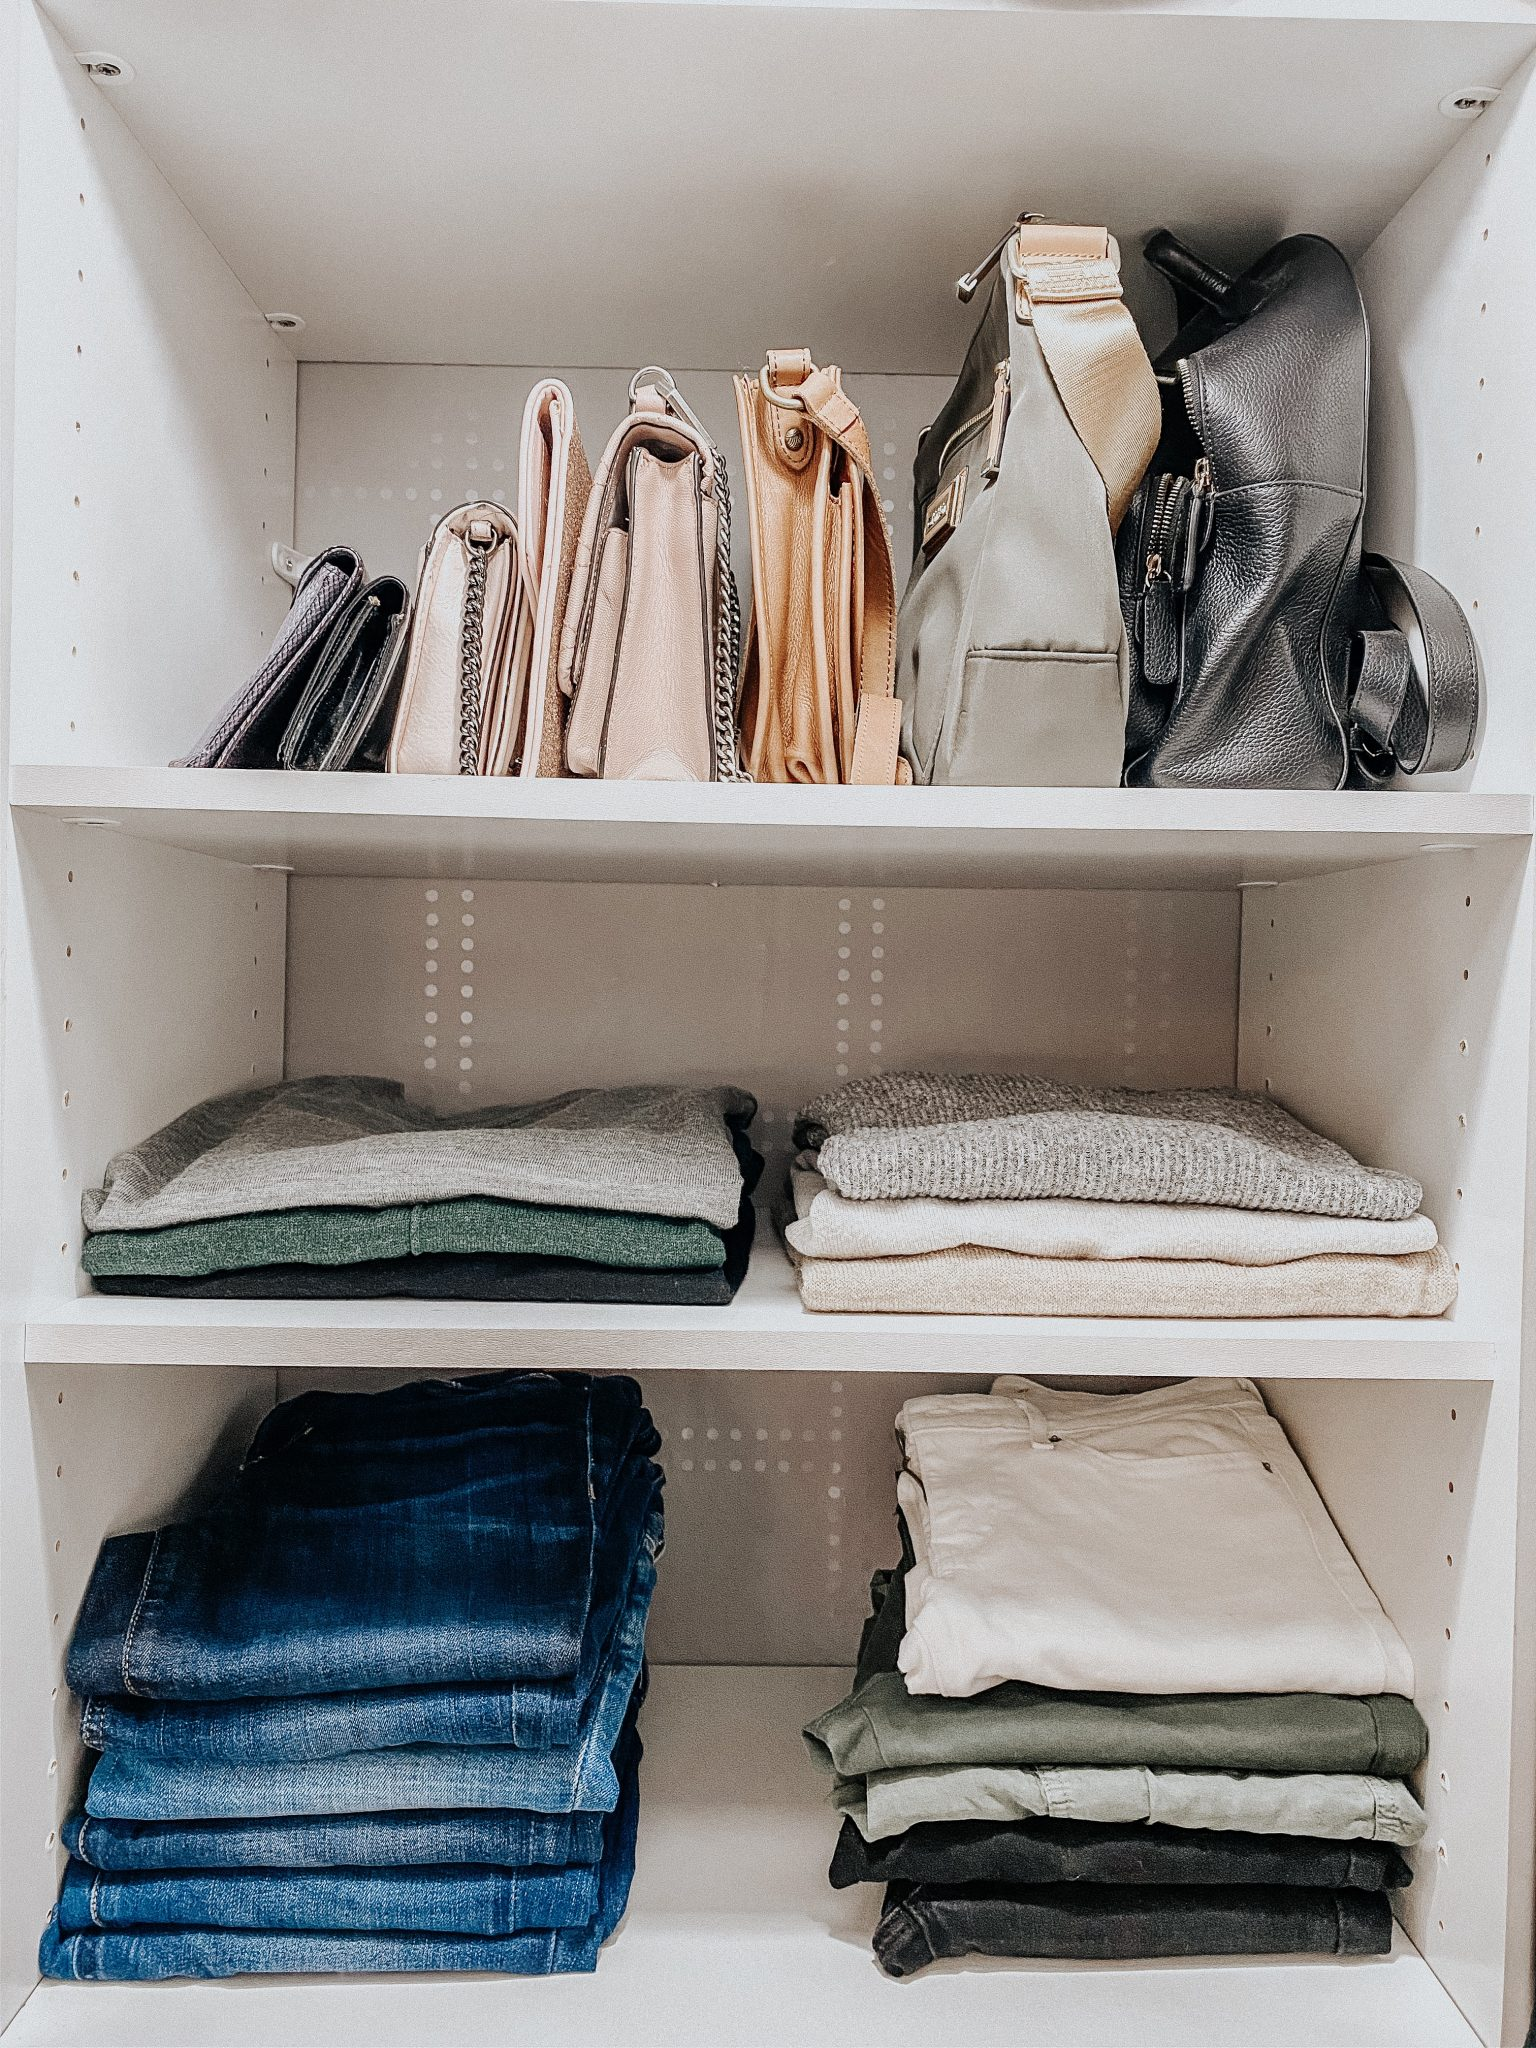 DIY Closet Makeover | Daily Splendor Life and Style Blog | finished closet #closetorganizer #smallcloset #smallspaces #organizedcloset #semicustomcloset #budgetcloset #diycloset #diyhomeproject #thehomedepot #homedepot #thecontainerstore #closetmaid #wallpaper #shleves